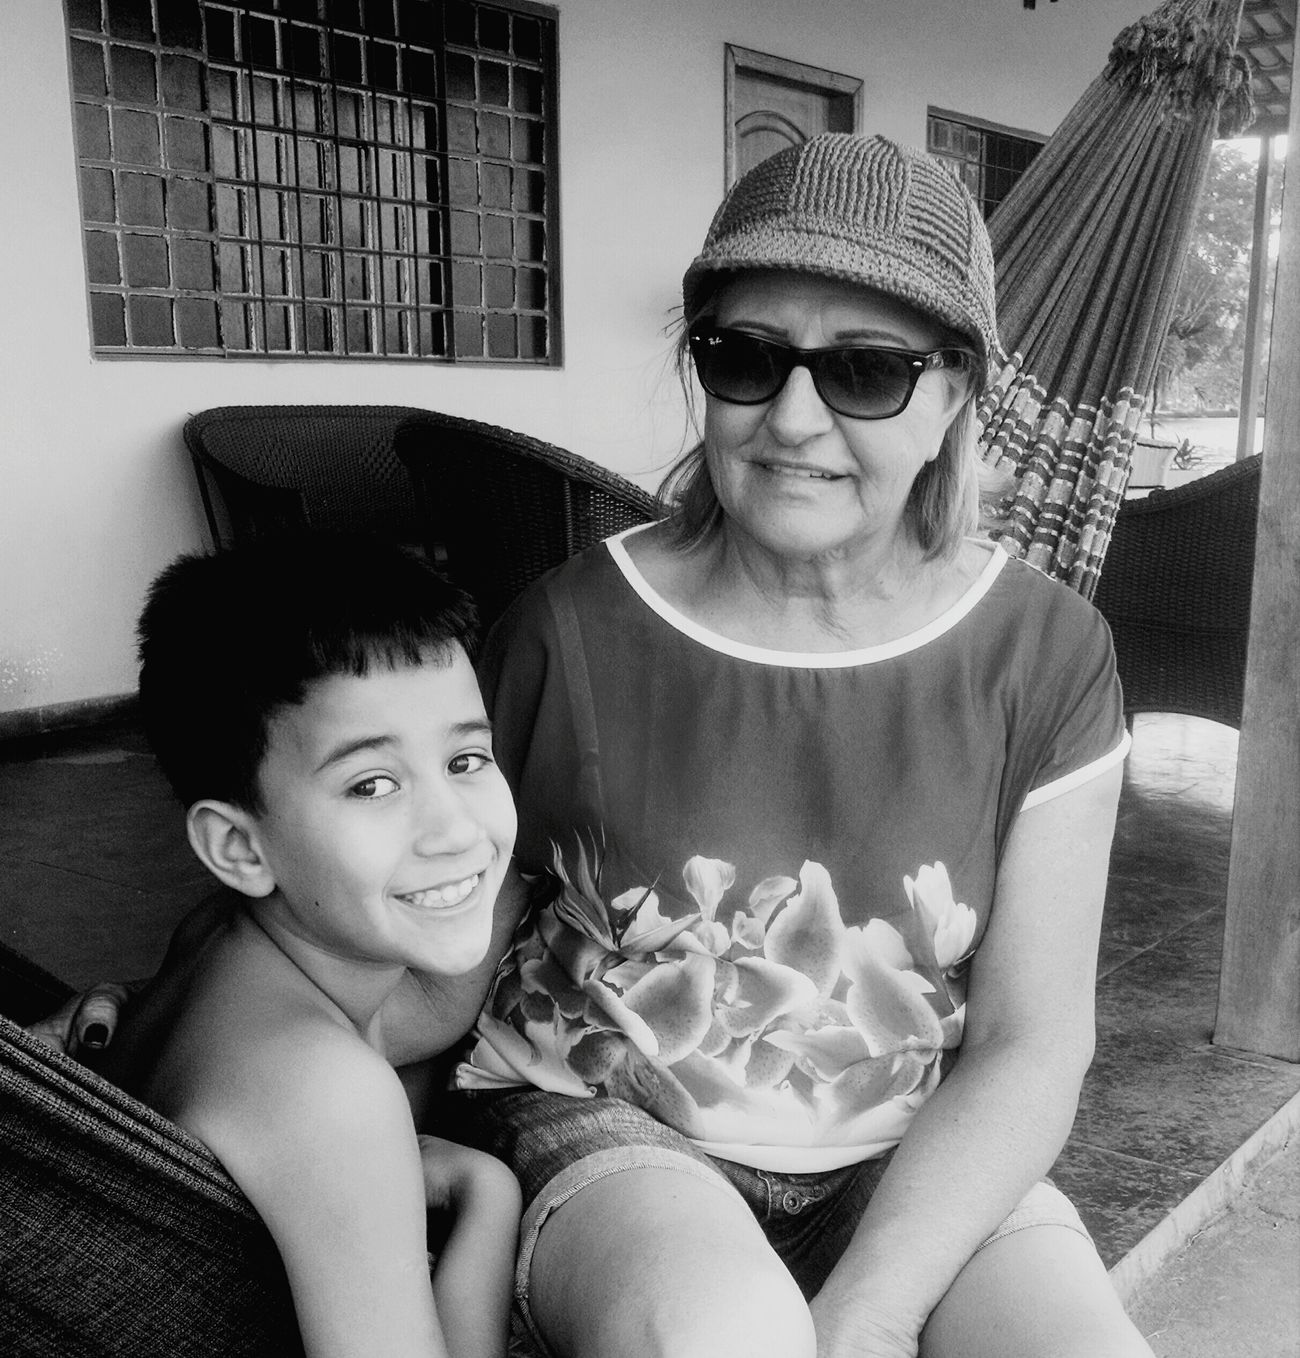 Grandmother Love ♥ Children i Inconditional Love  Taking Photos Relaxing Emotions Family❤